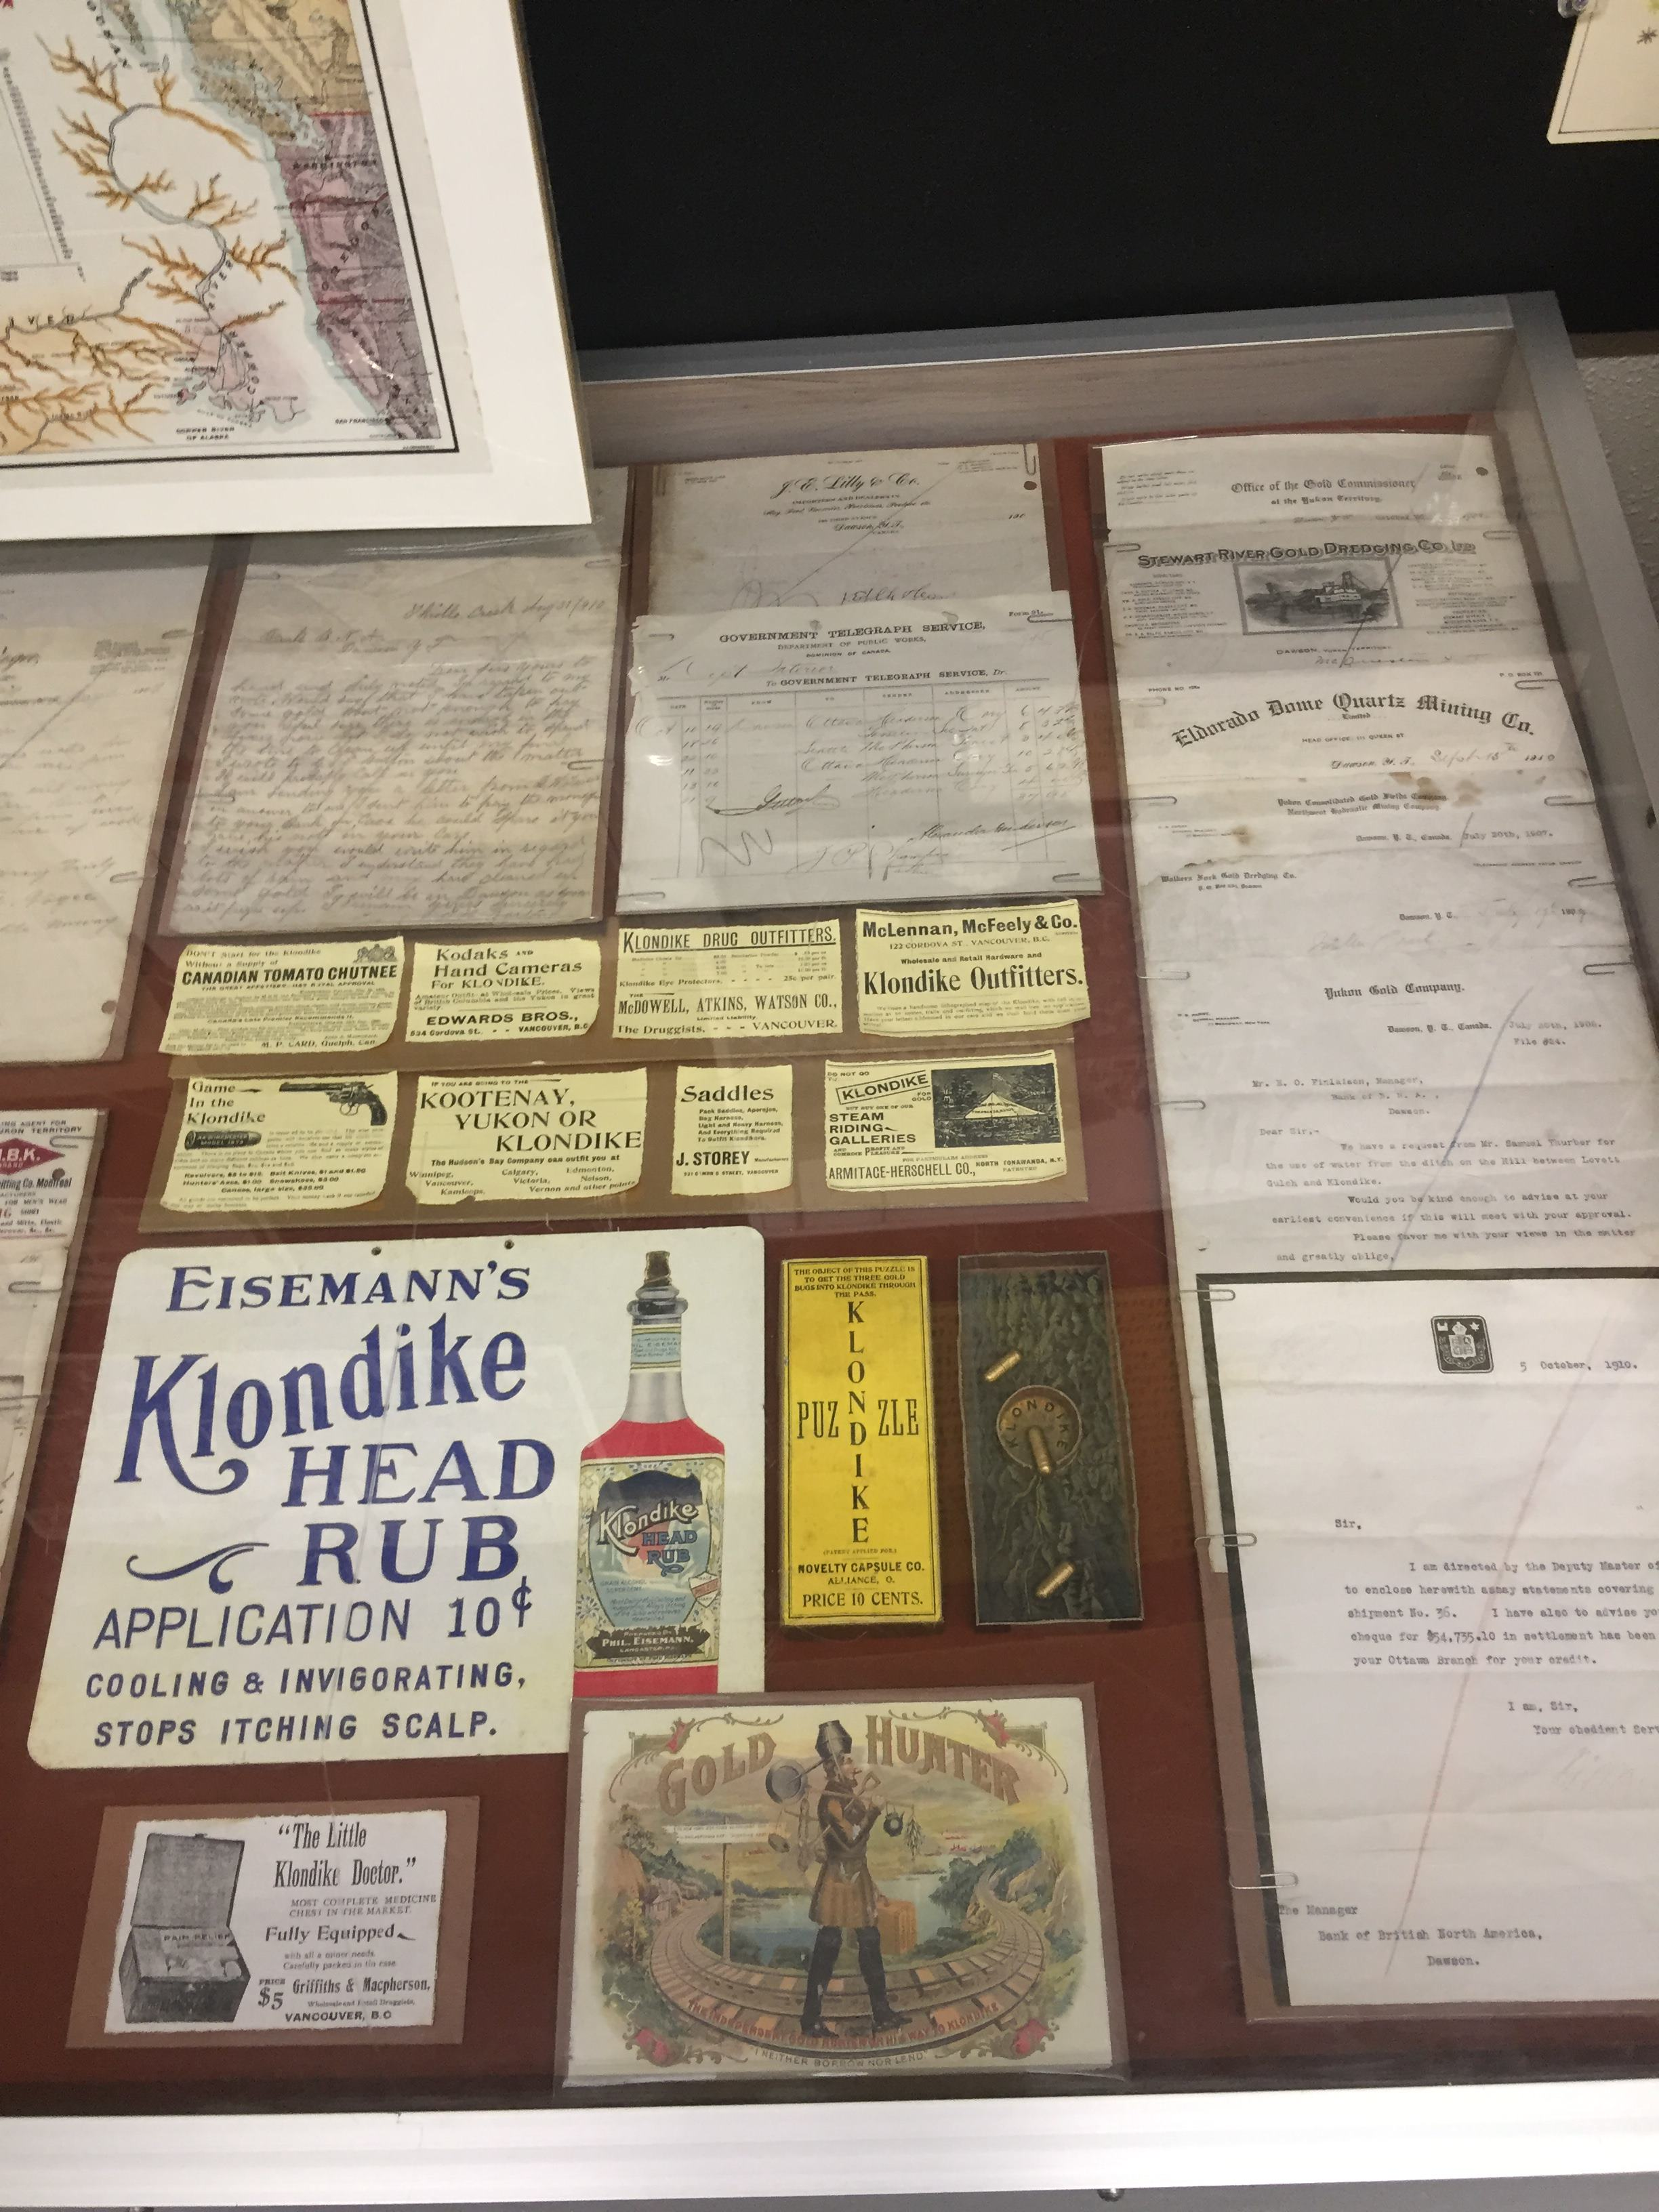 Sometimes the products had no obvious connection with the Klondike, like the head rub. And sometimes they did, like the medicine chest which seems to be aimed at stampeders.